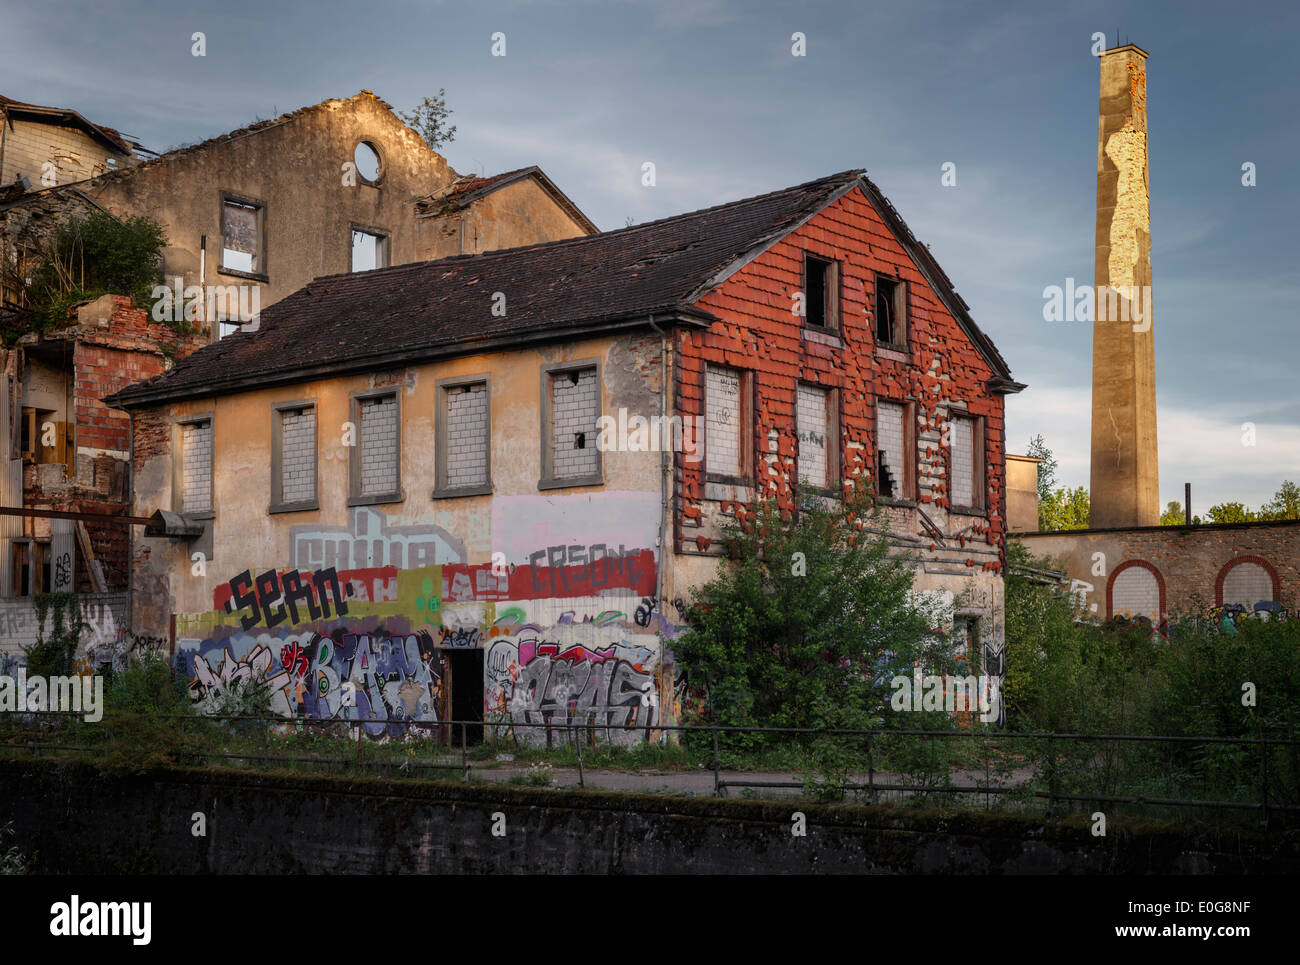 Spinnerei Jakobstal, abandoned spinning mill, Bülach, Canton of Zurich, Switzerland. - Stock Image